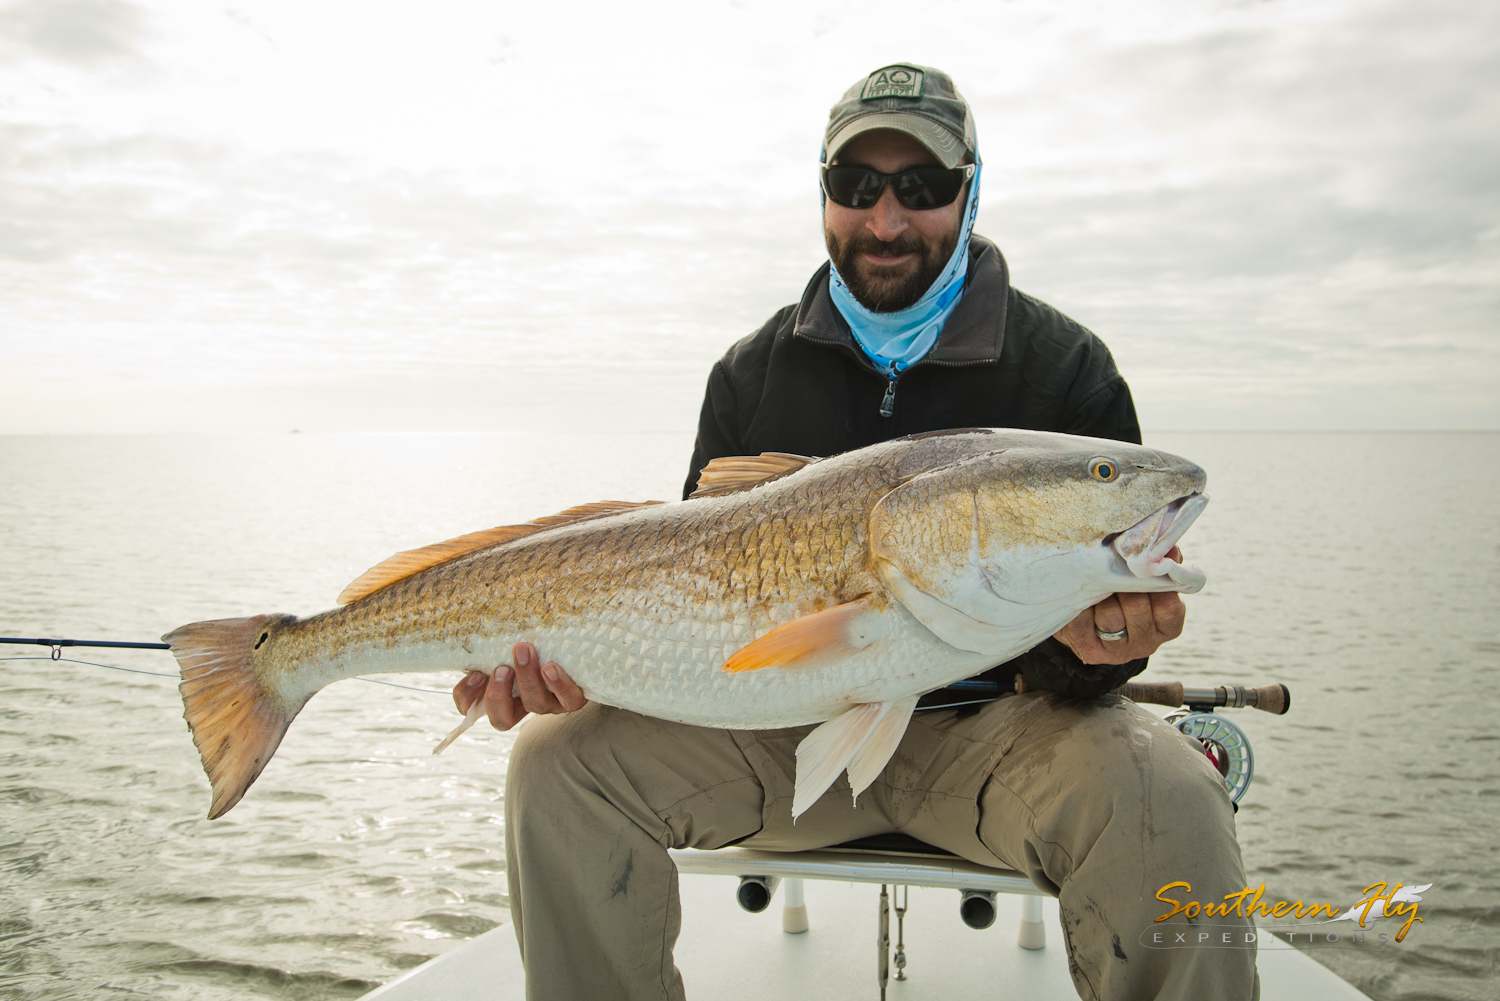 best time to fly fish for redfish in louisiana by southern fly expeditions